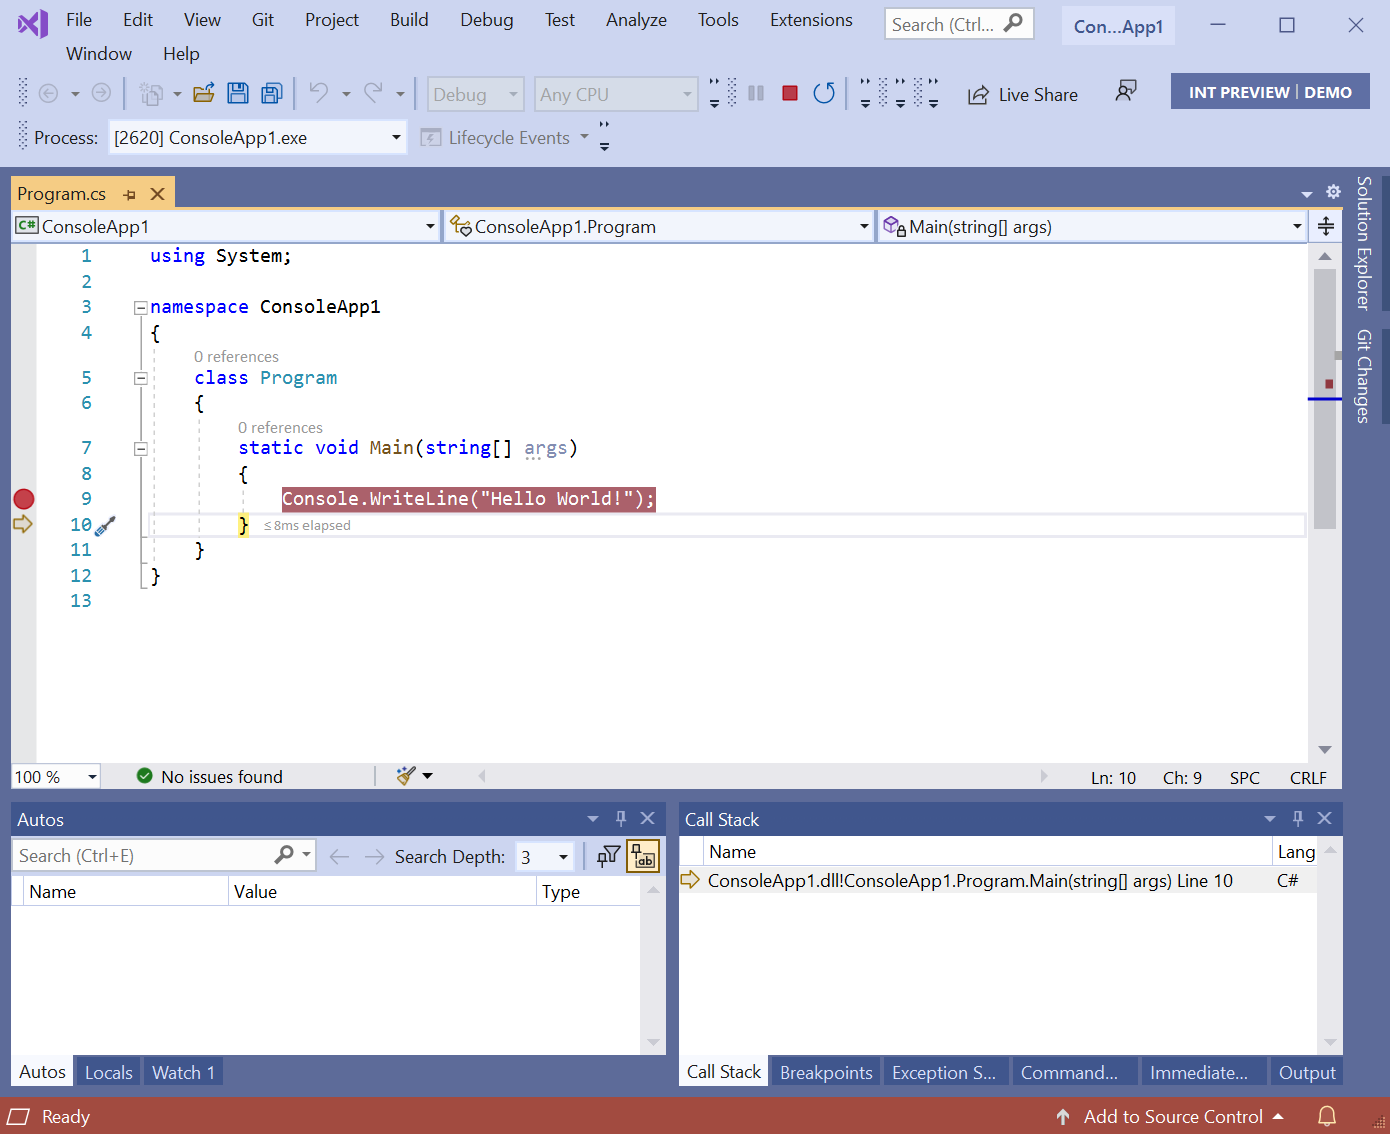 Debugger at brace after Console.Writeline